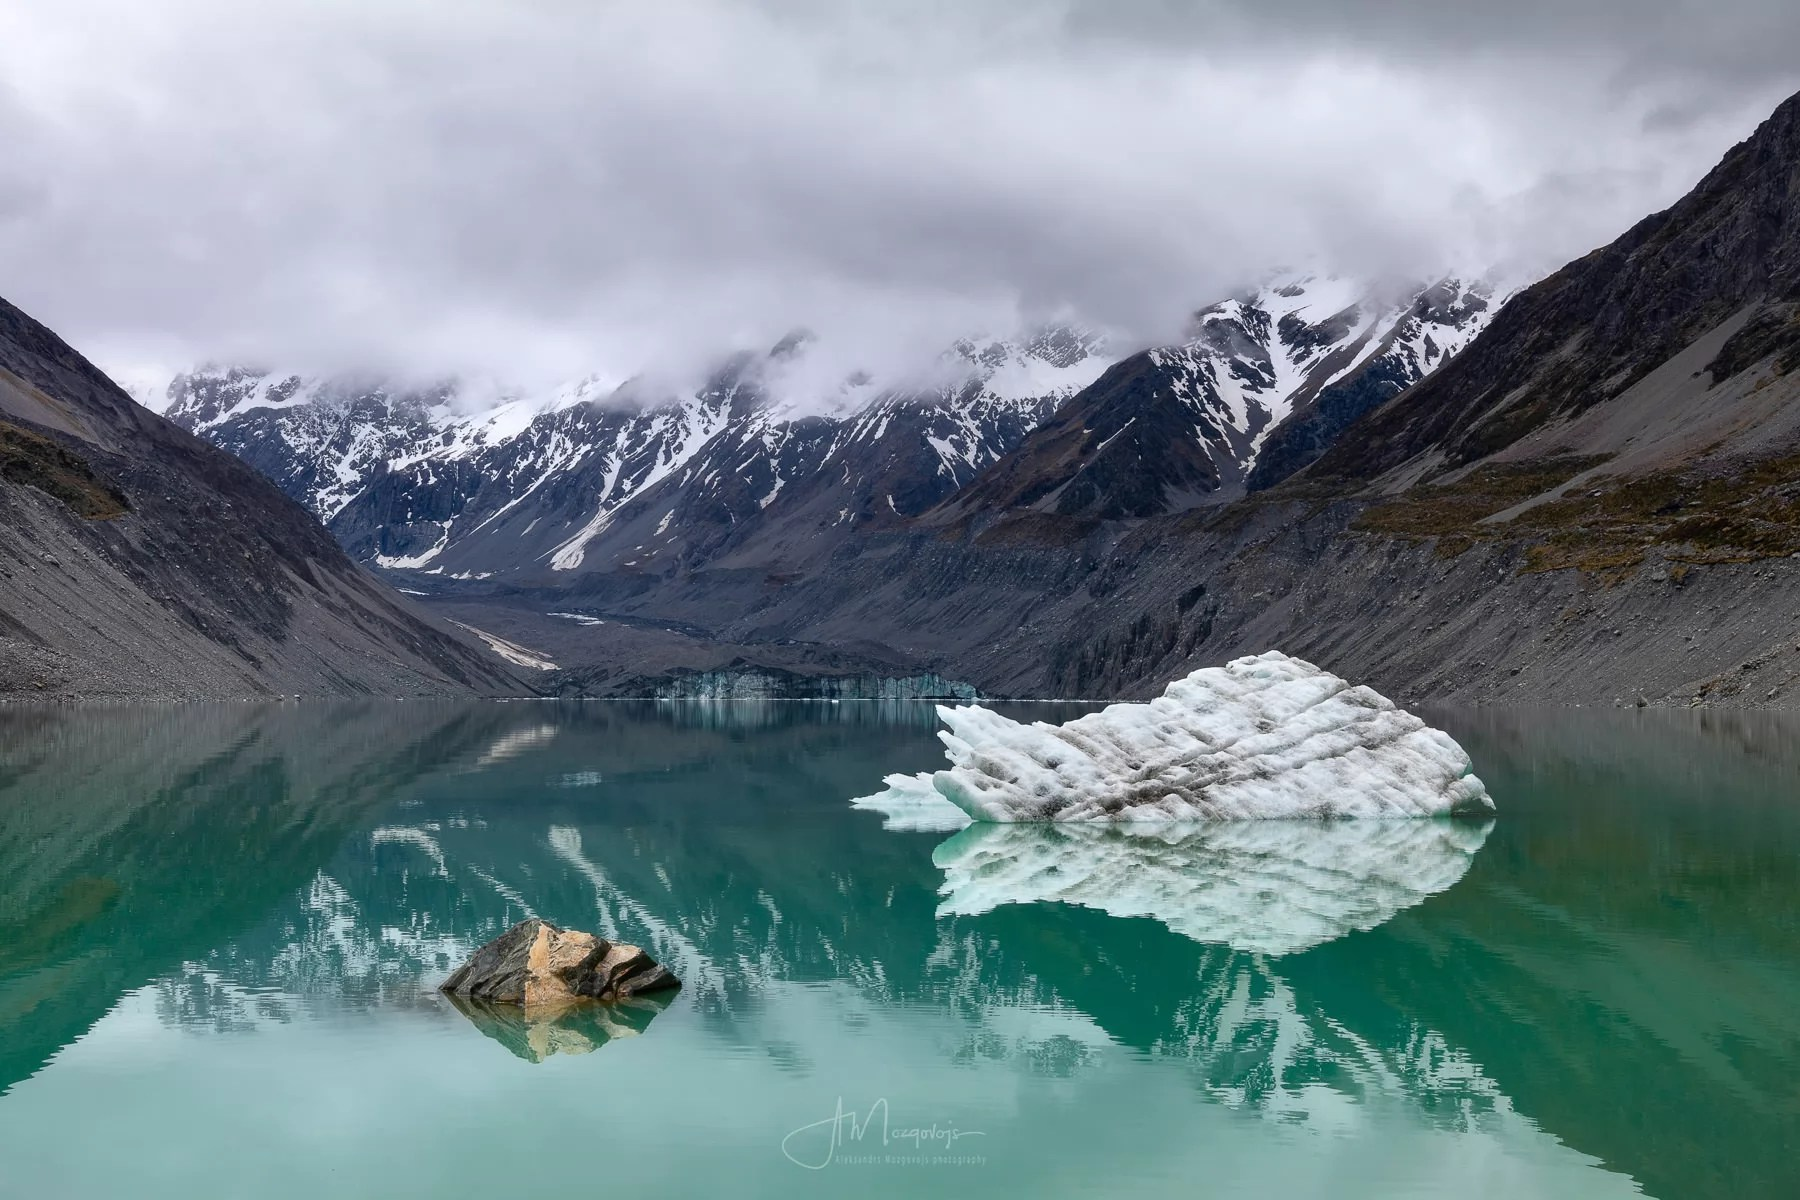 Fish-looking iceberg in Hooker Lake, New Zealand